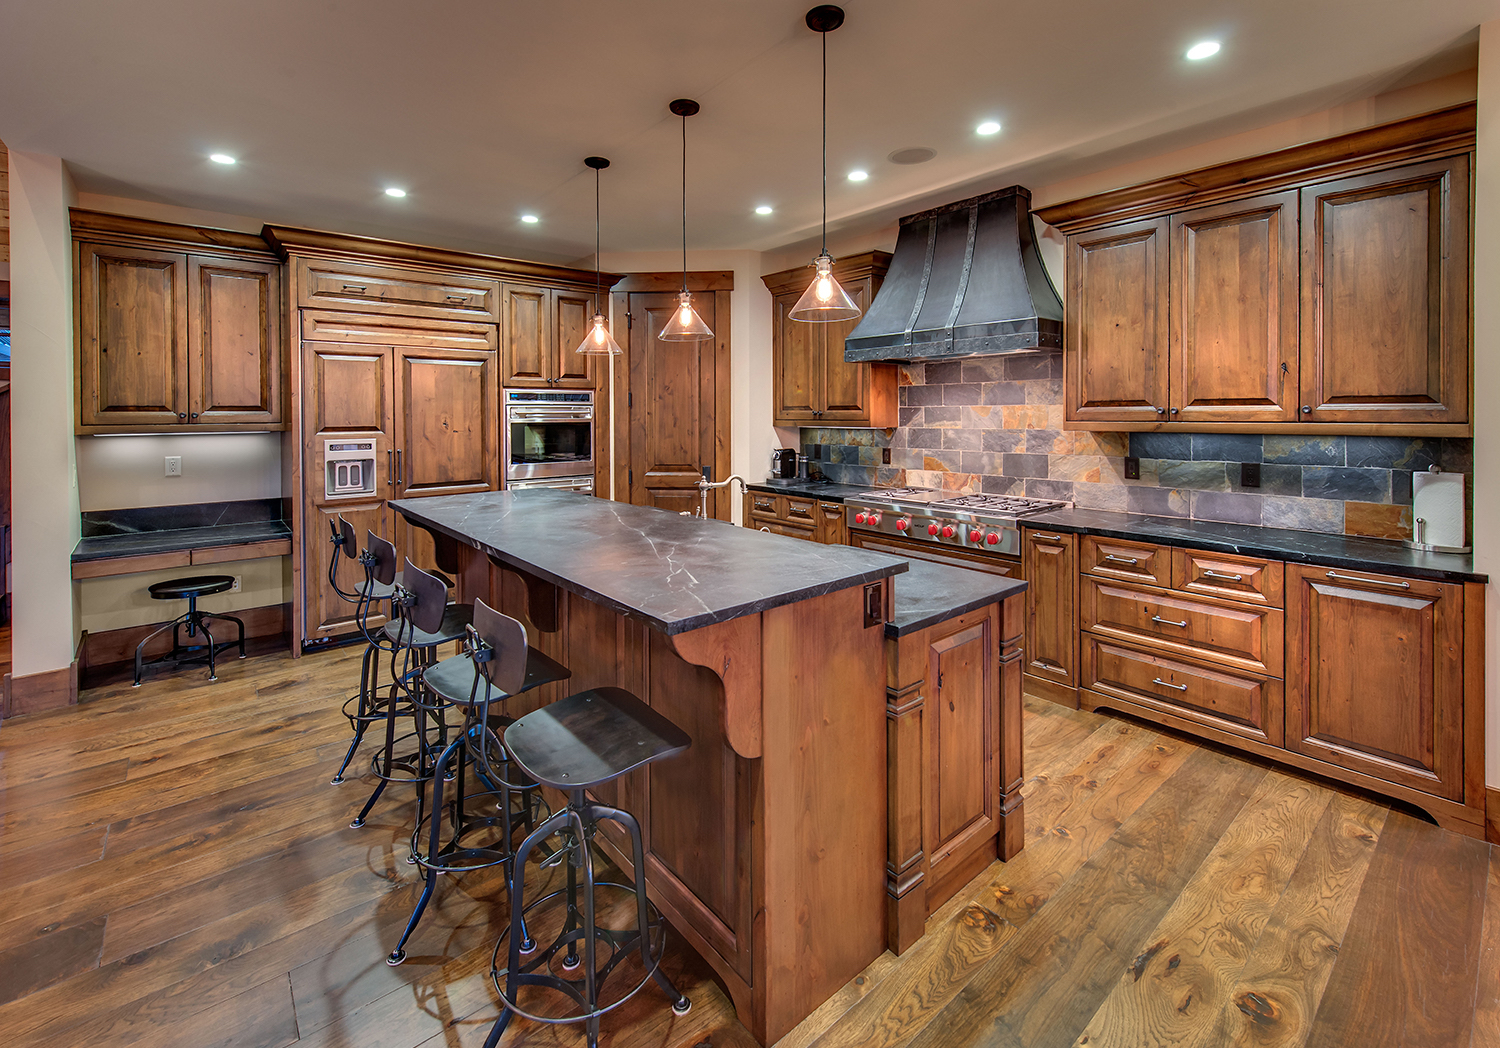 Lot 212_Kitchen_Island_Chimney Hood_Tile Backsplash.jpg